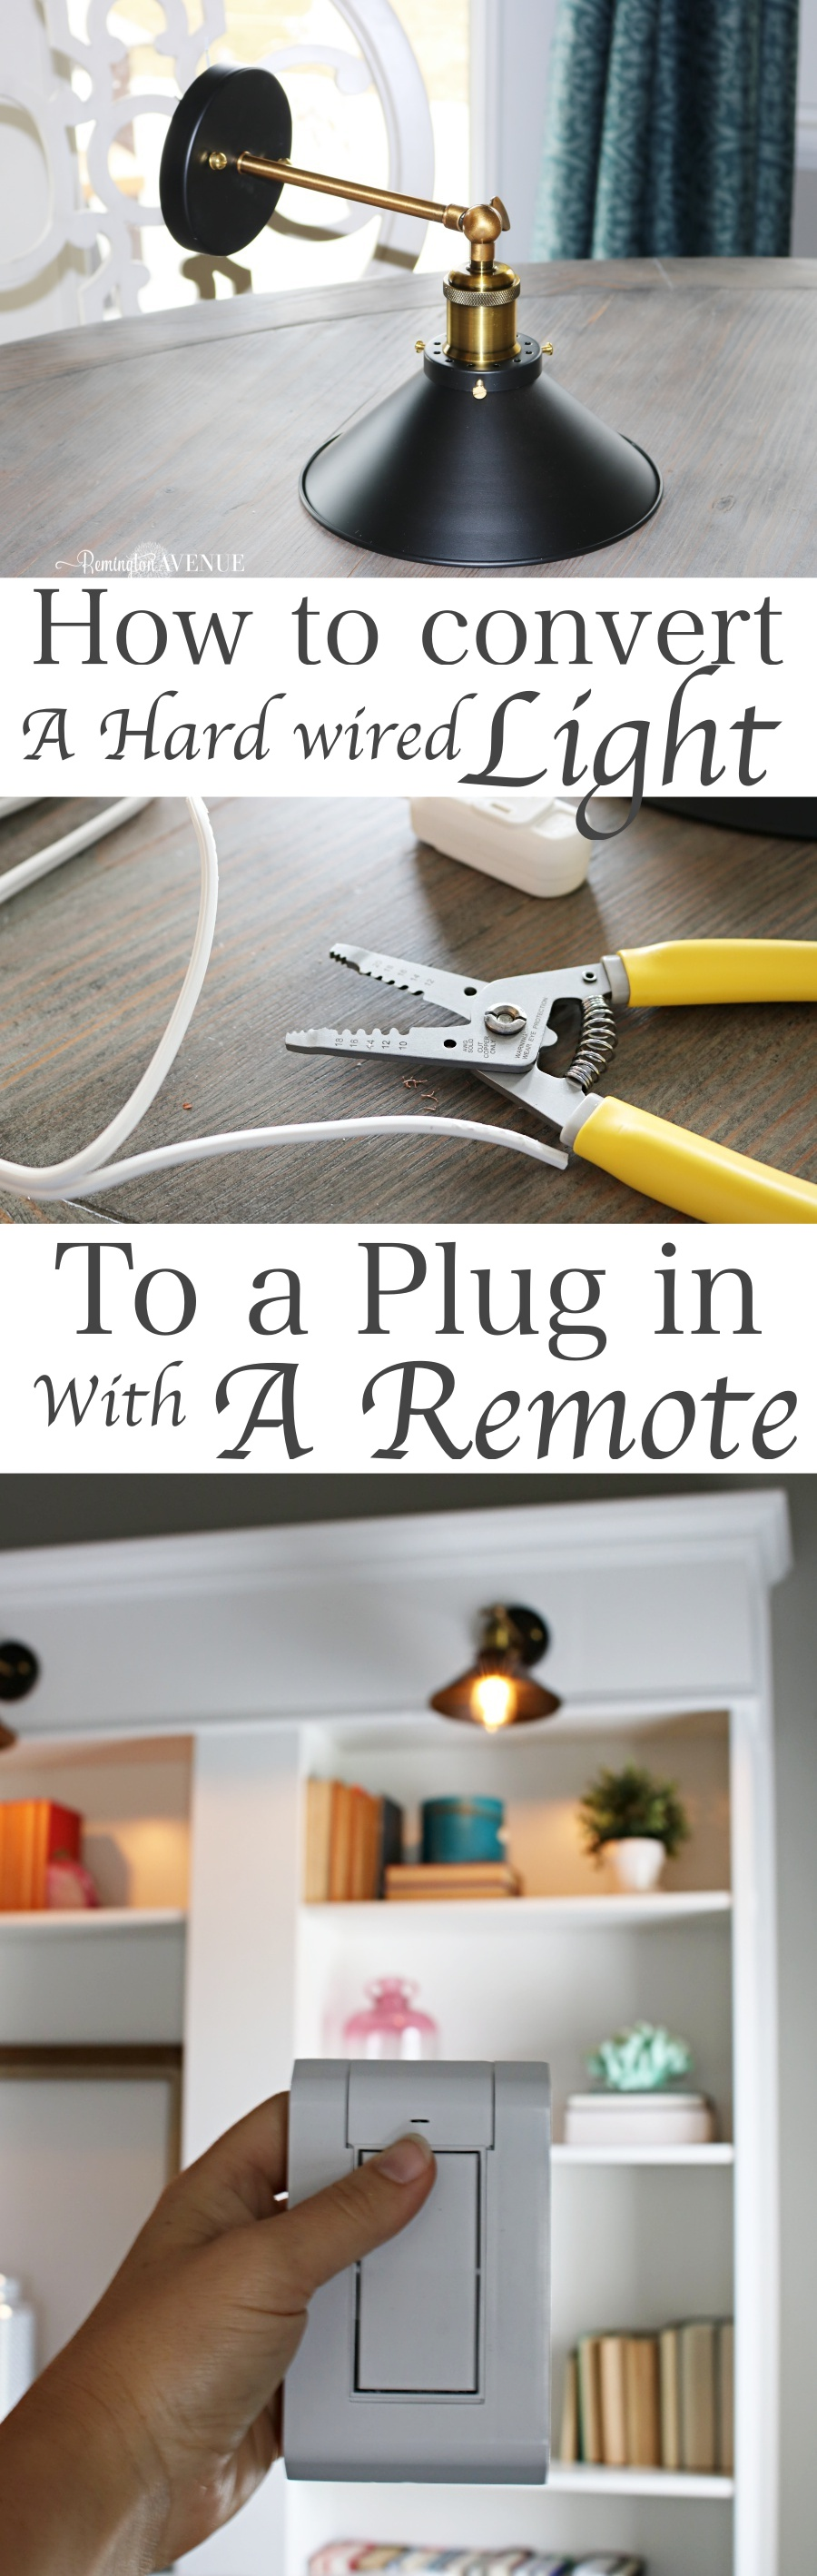 How to convert hard wired light fixtures into a plug in ... Hard Wired Remote Control Light Switch on